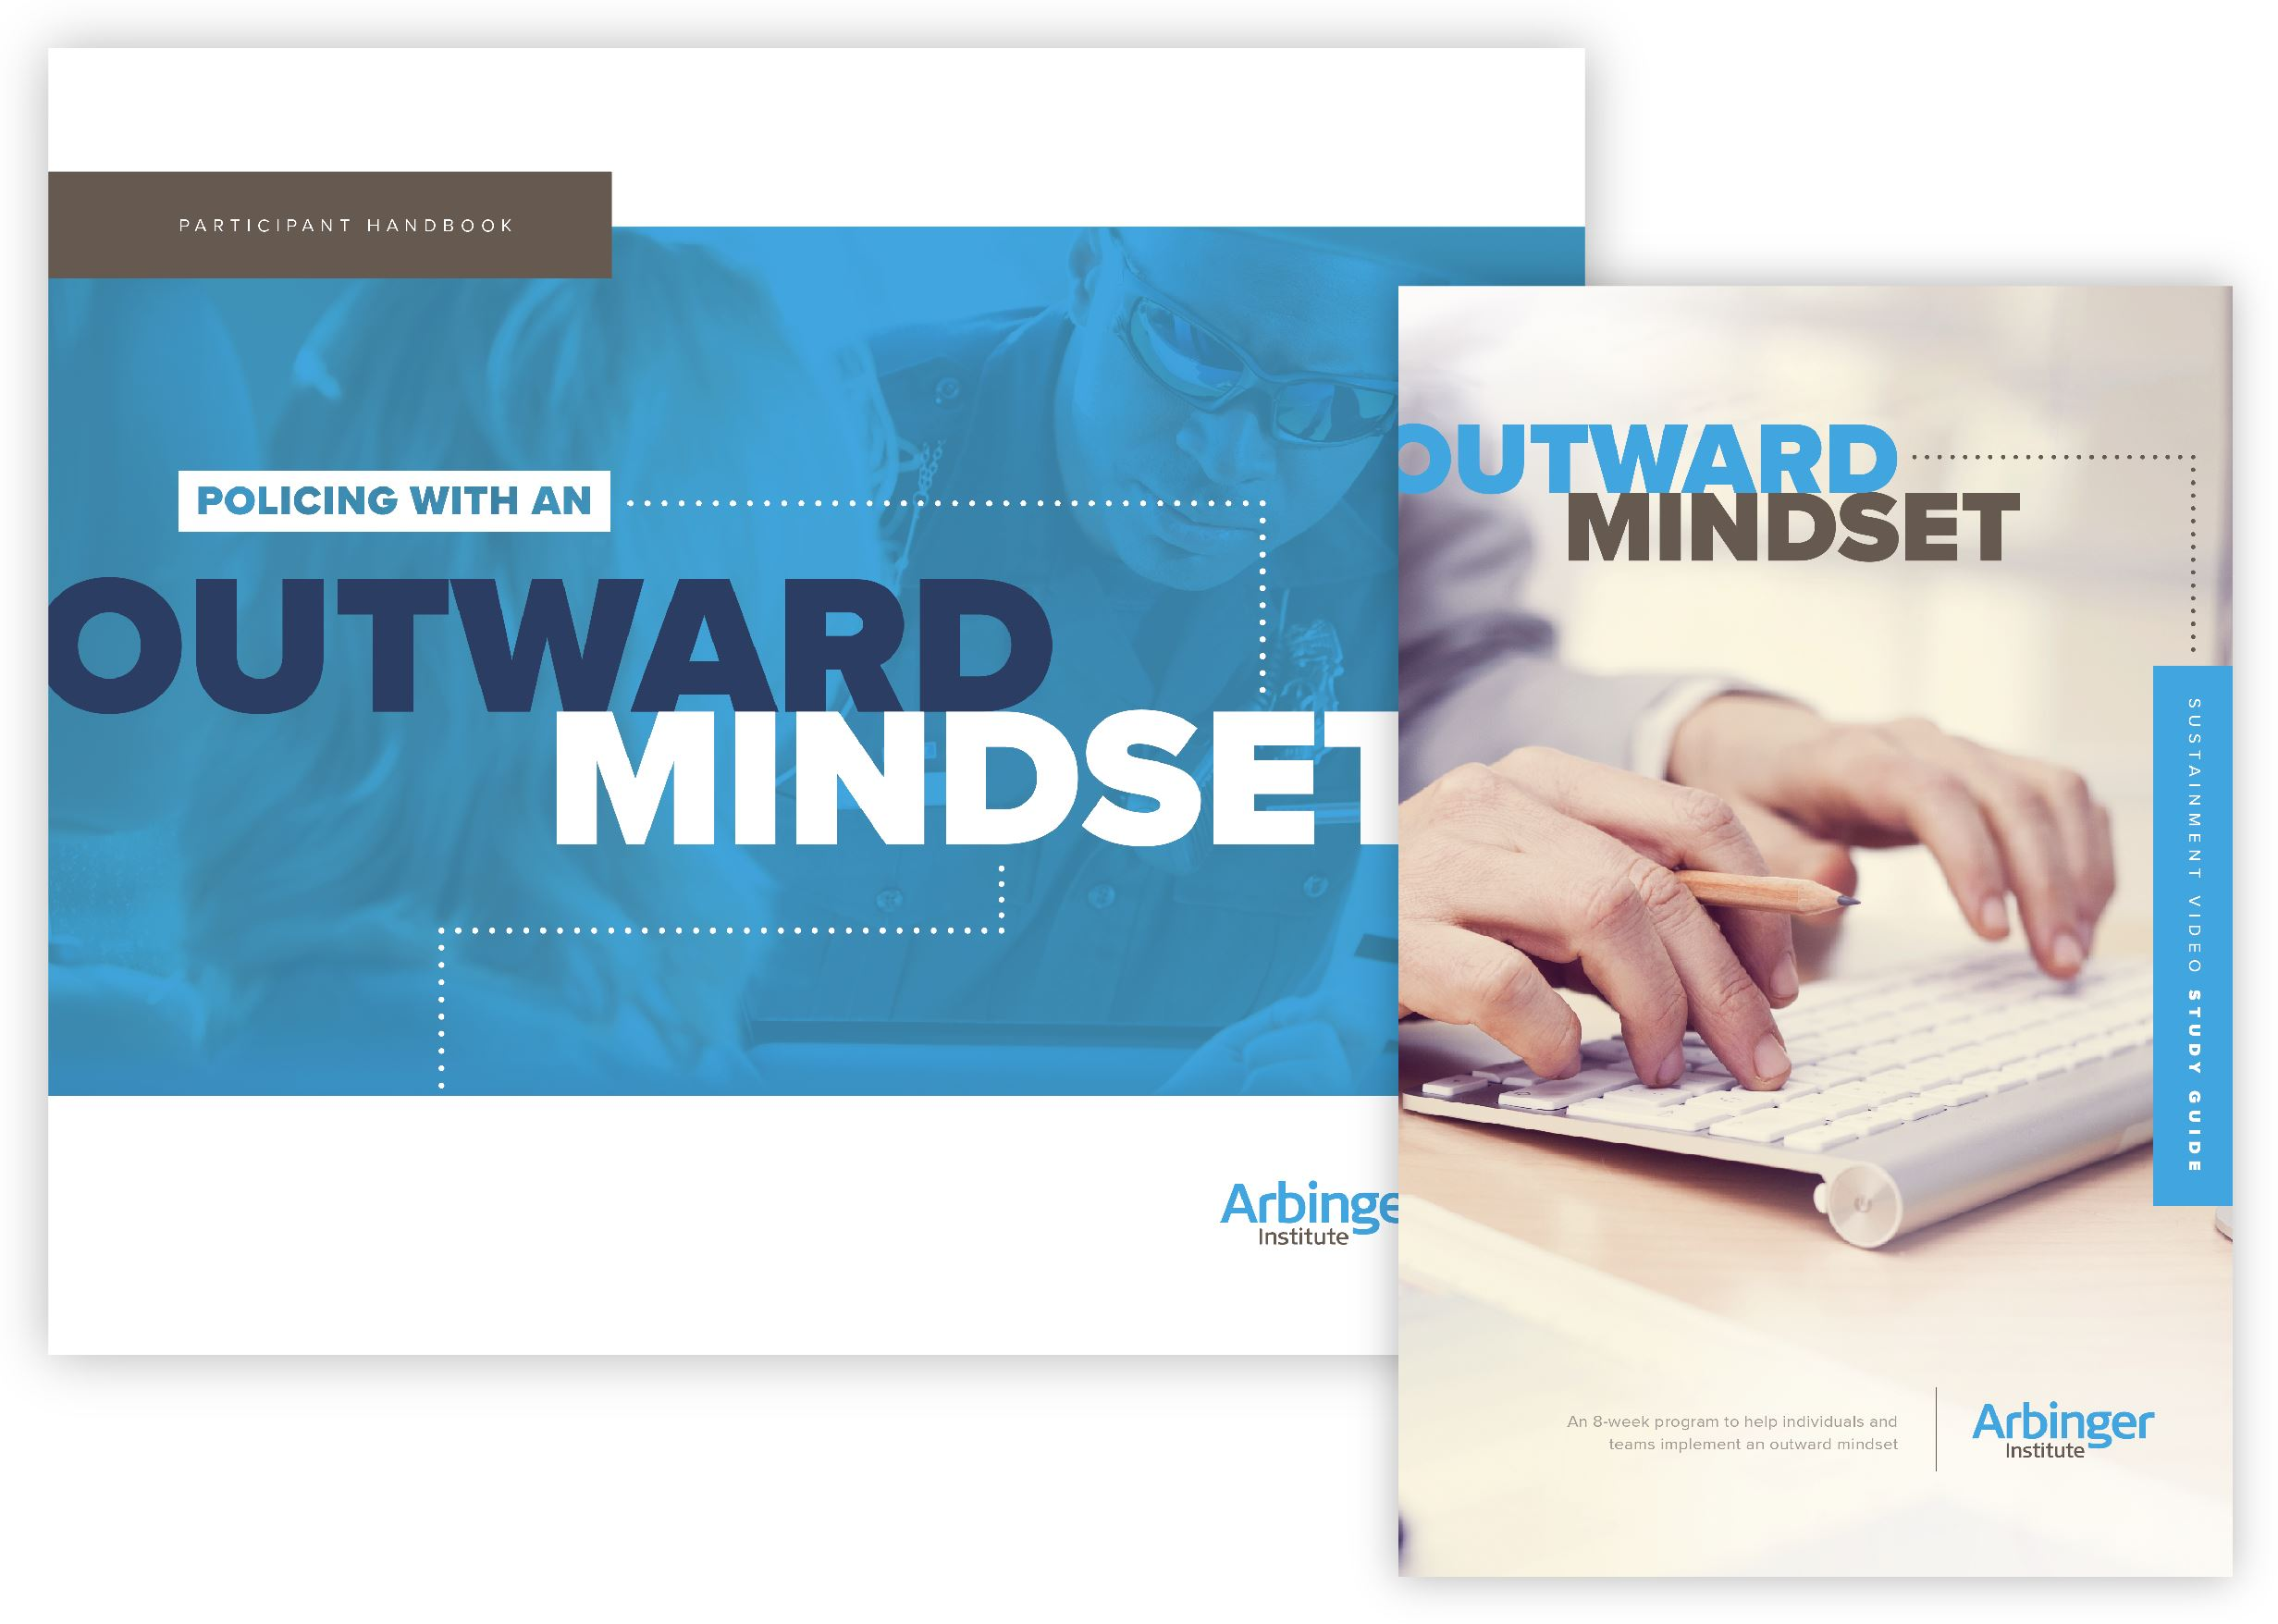 Policing with an Outward Mindset workbook